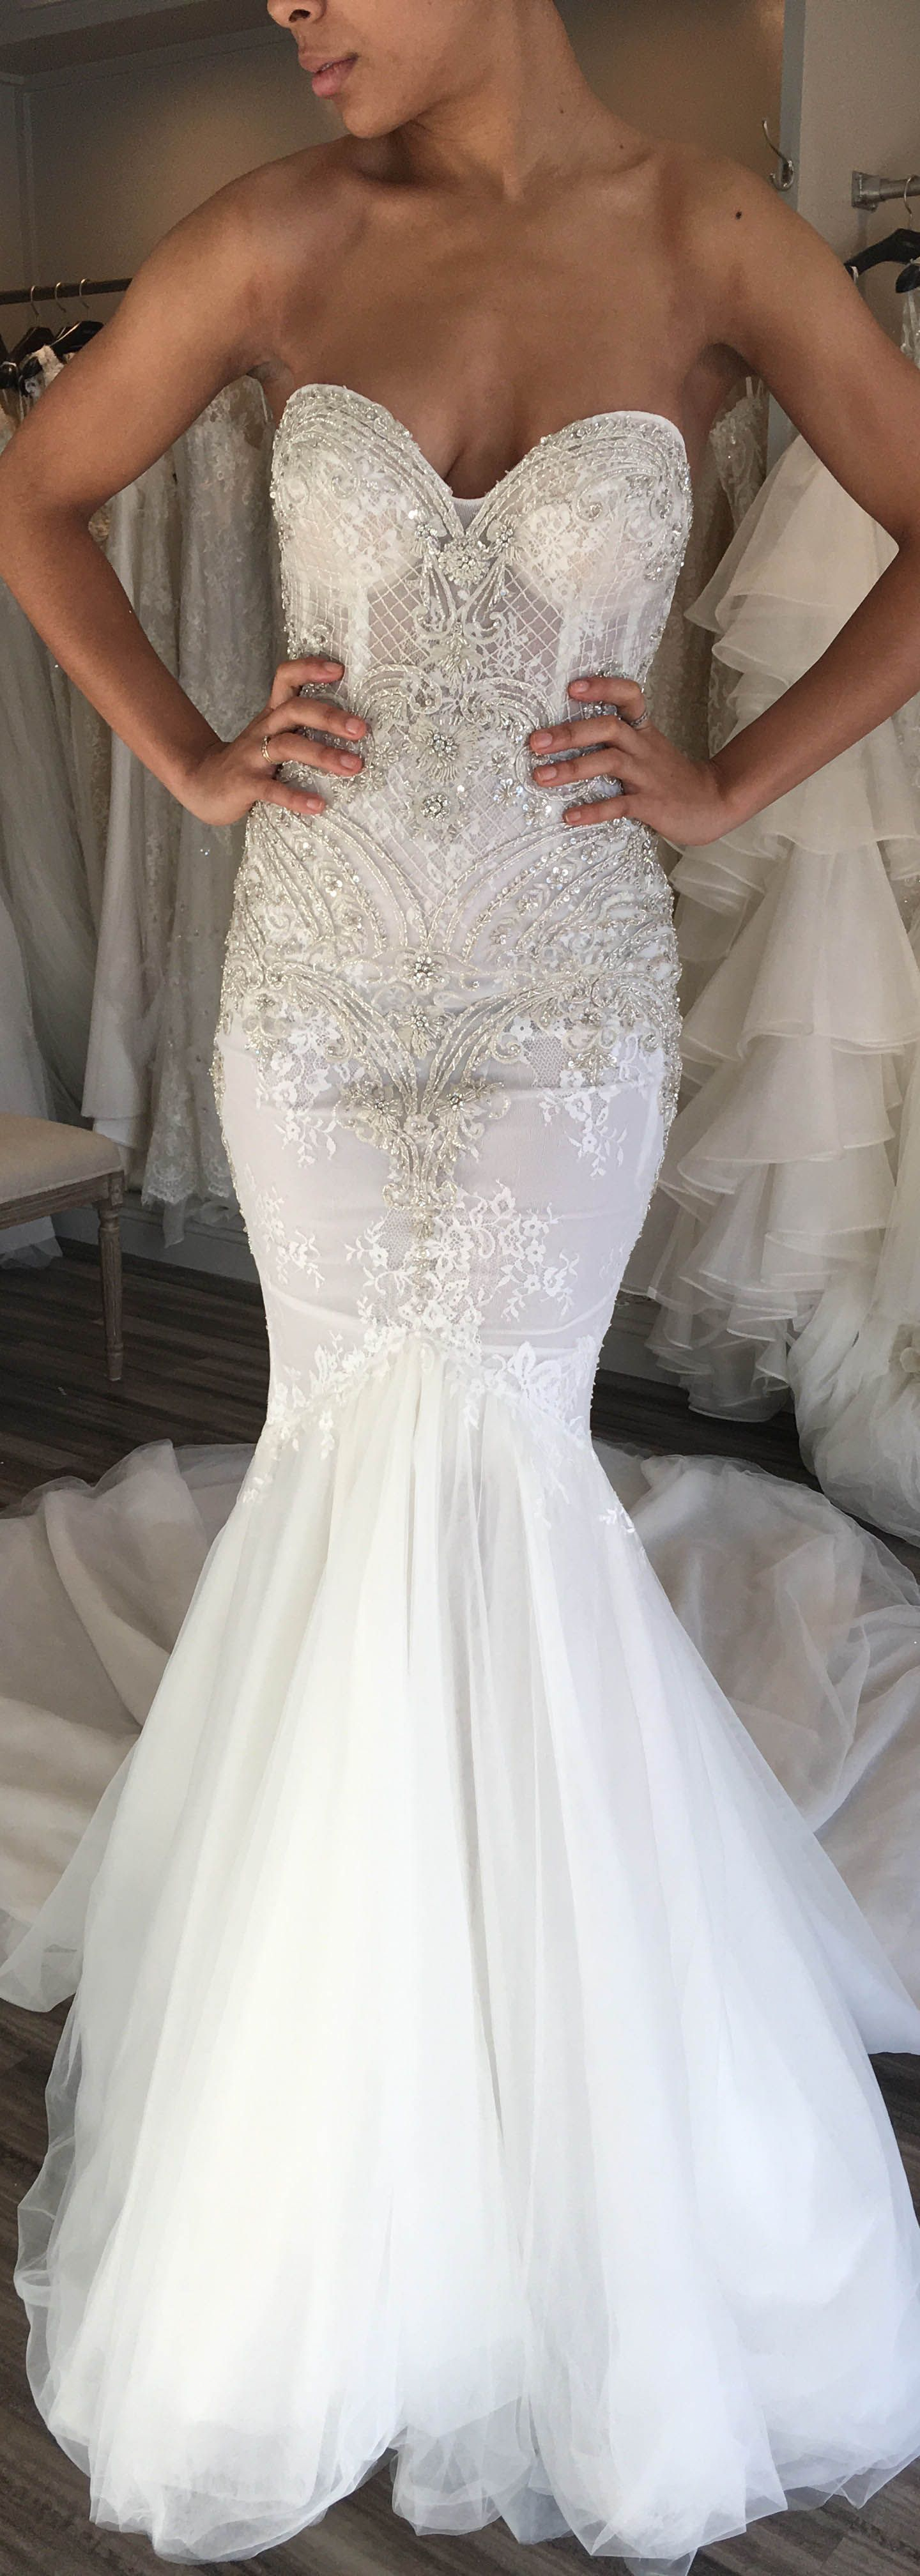 This Stunning Berta Dress Is Available For Off The Rack Purchase At